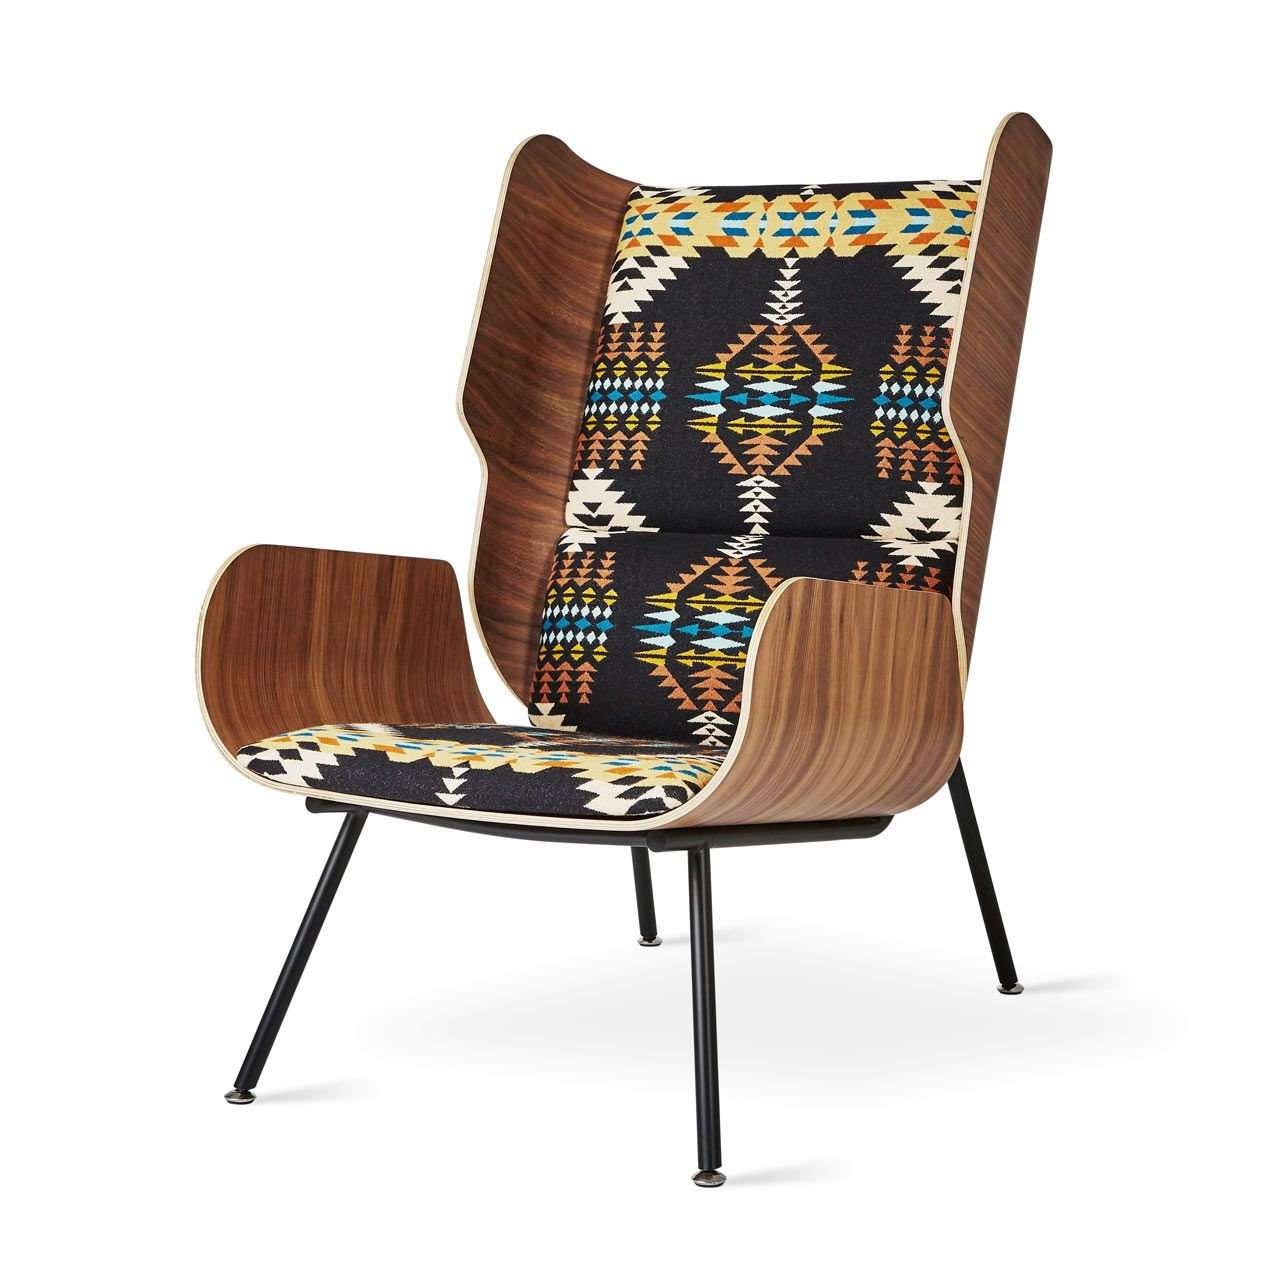 Modern furniture company gus modern has teamed up with textile brand pendleton woolen mills on a limited edition trio of lounge chairs